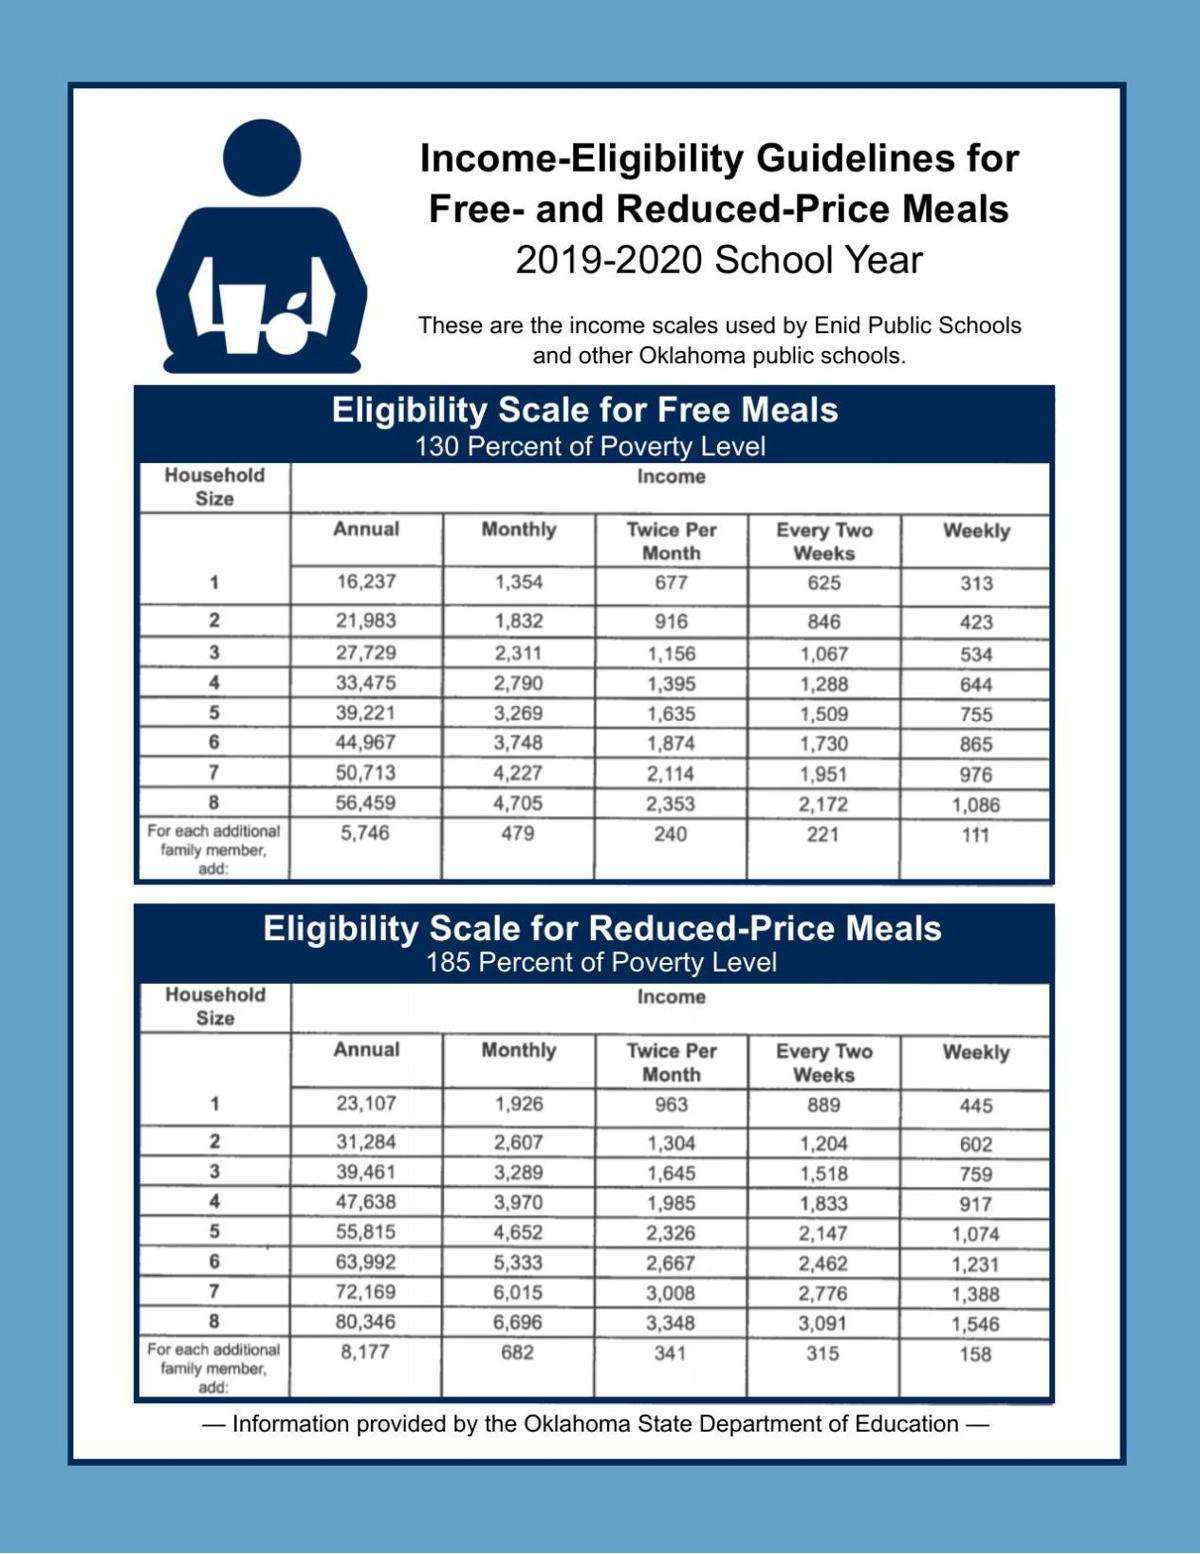 Income Eligibility guides for free- and reduced lunch